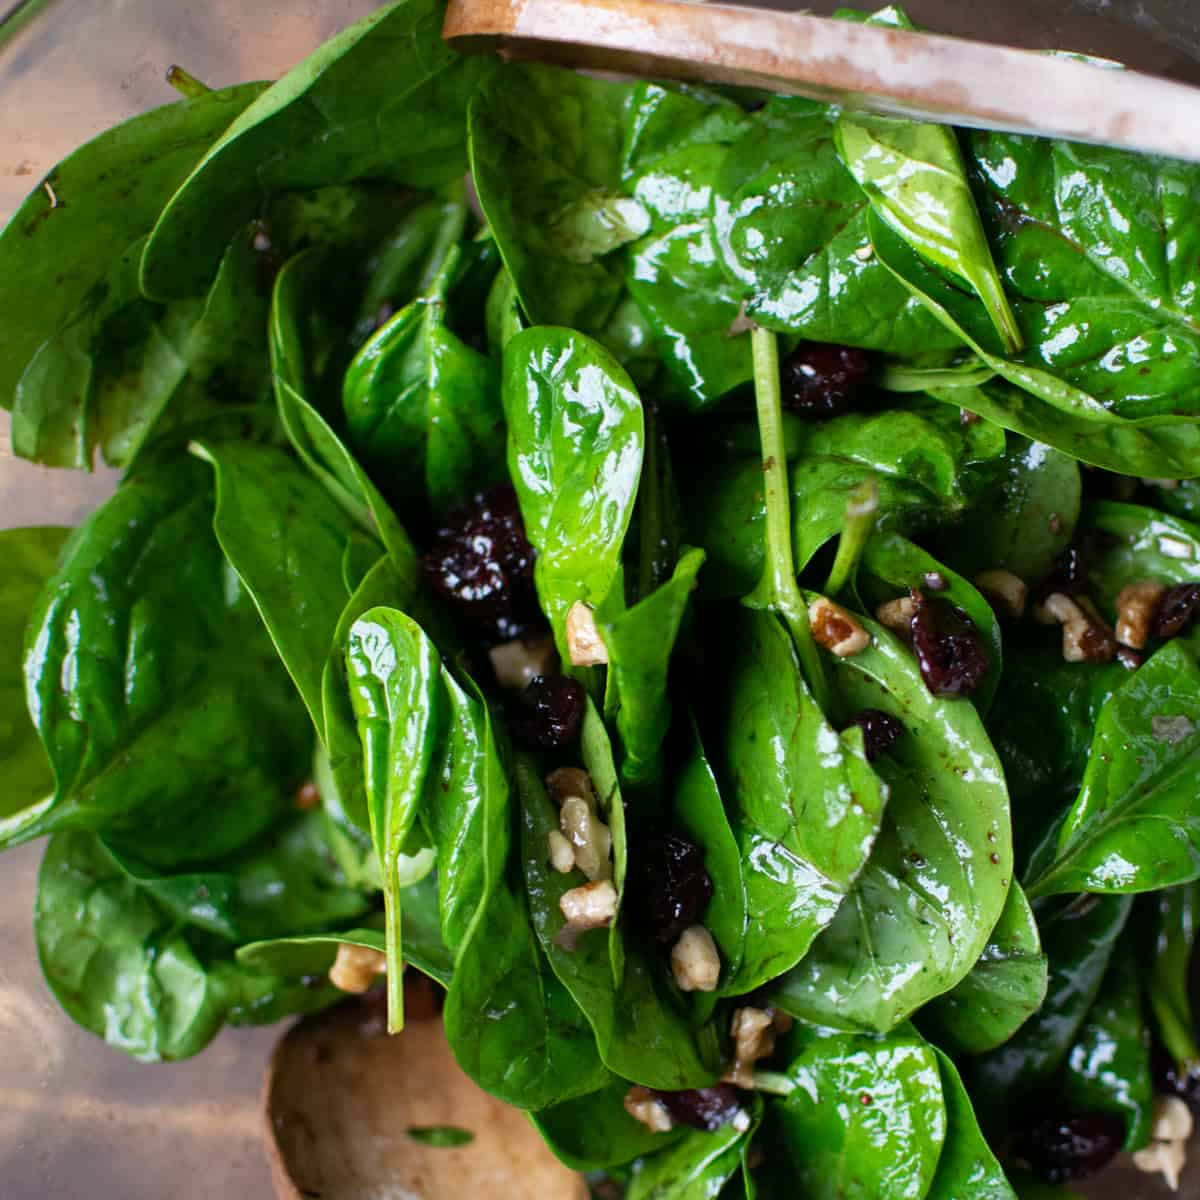 Baby spinach leaves covered in a light dressing.